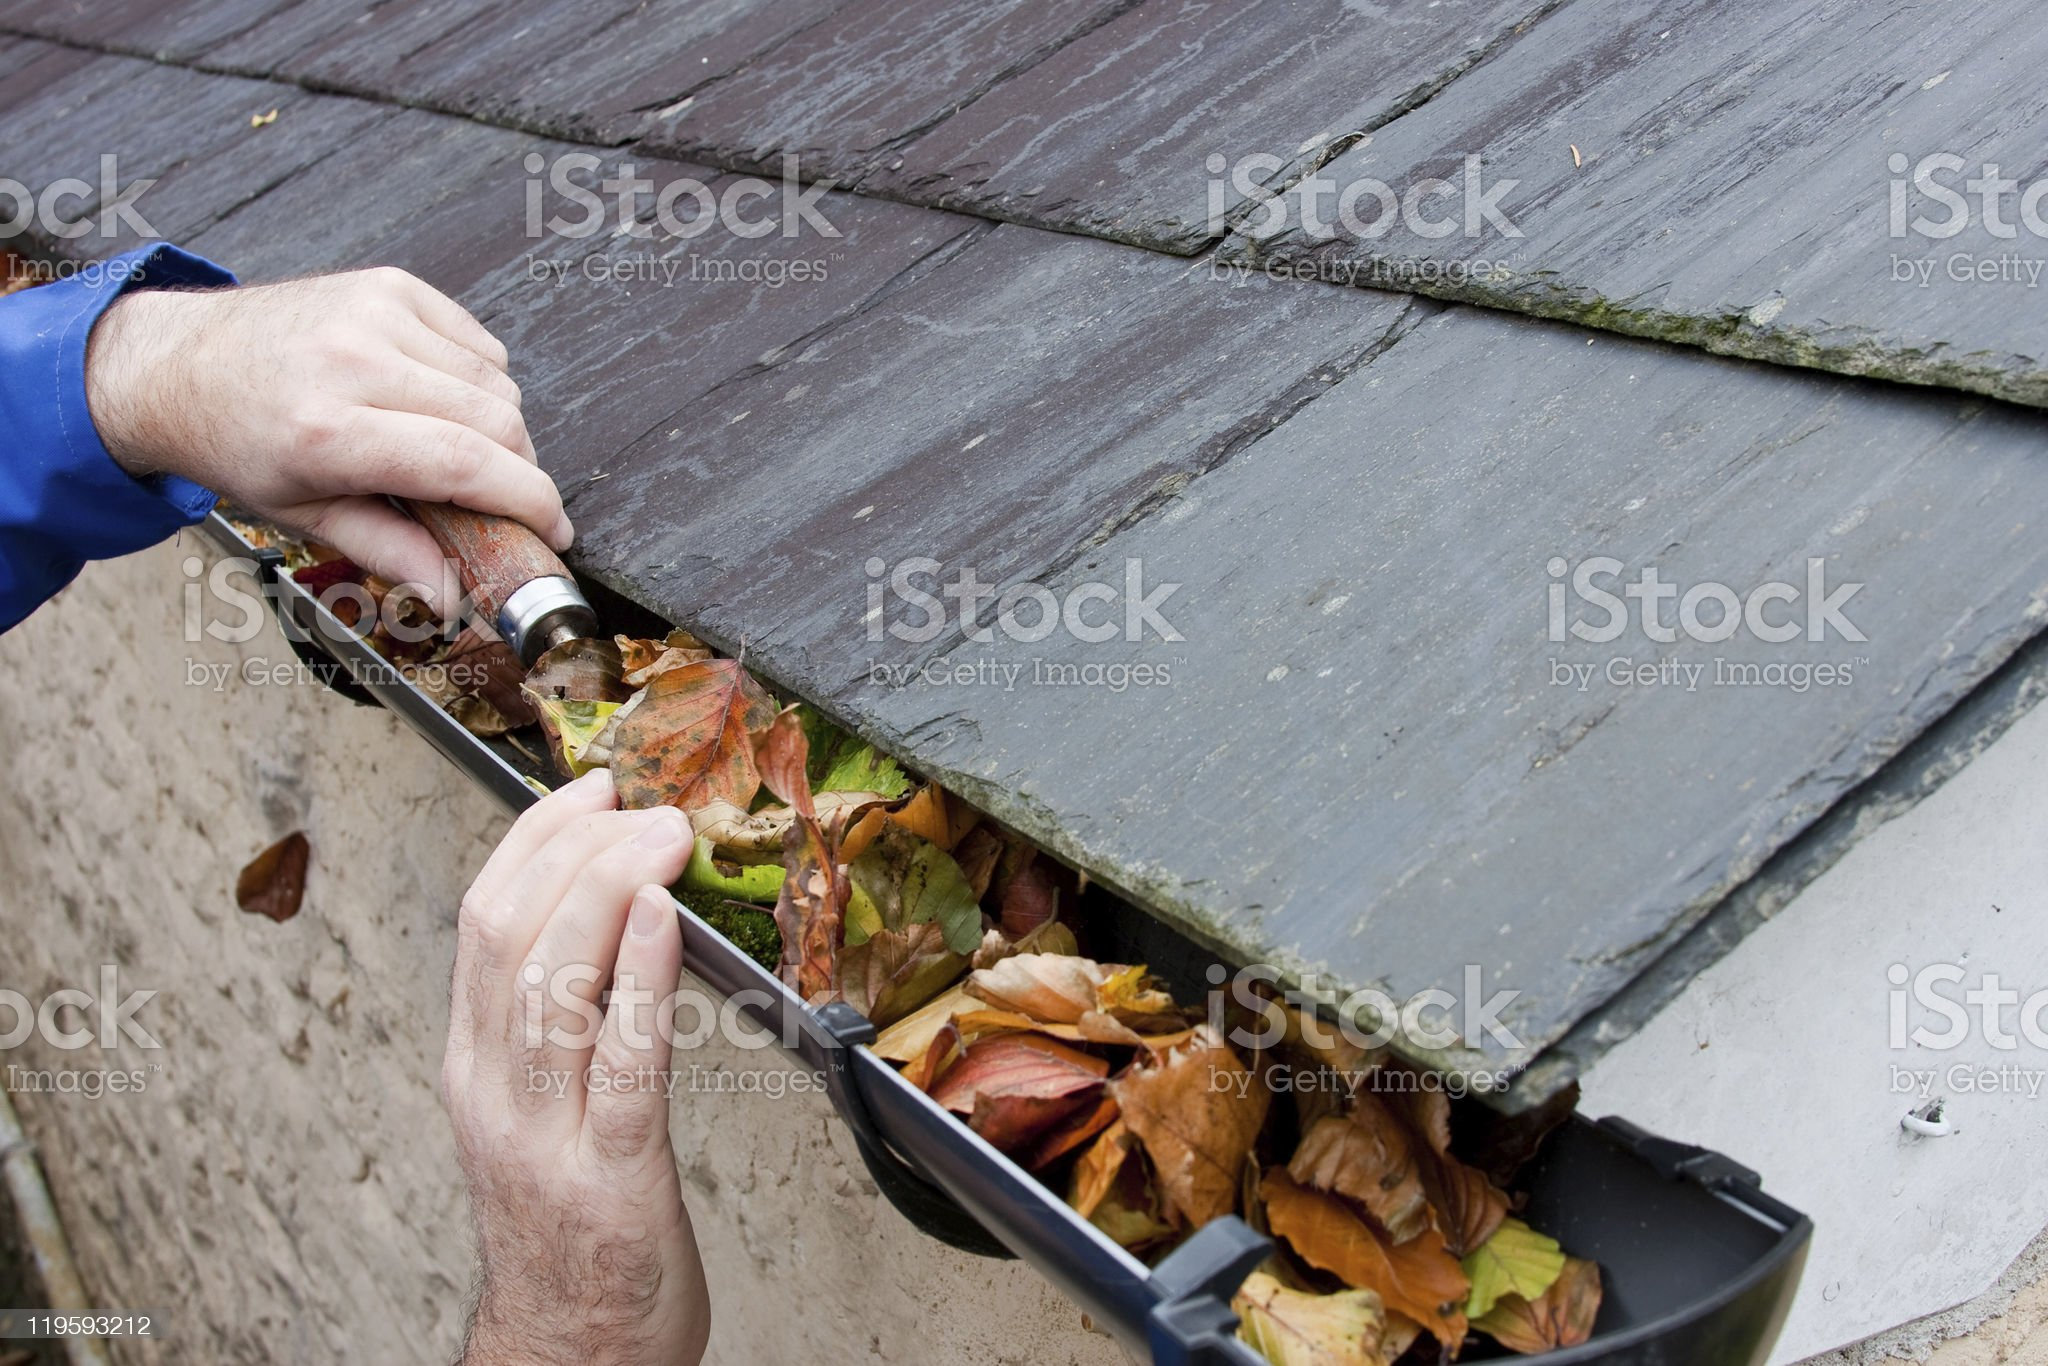 Workman Clearing Autumn Leaves from Gutter royalty-free stock photo